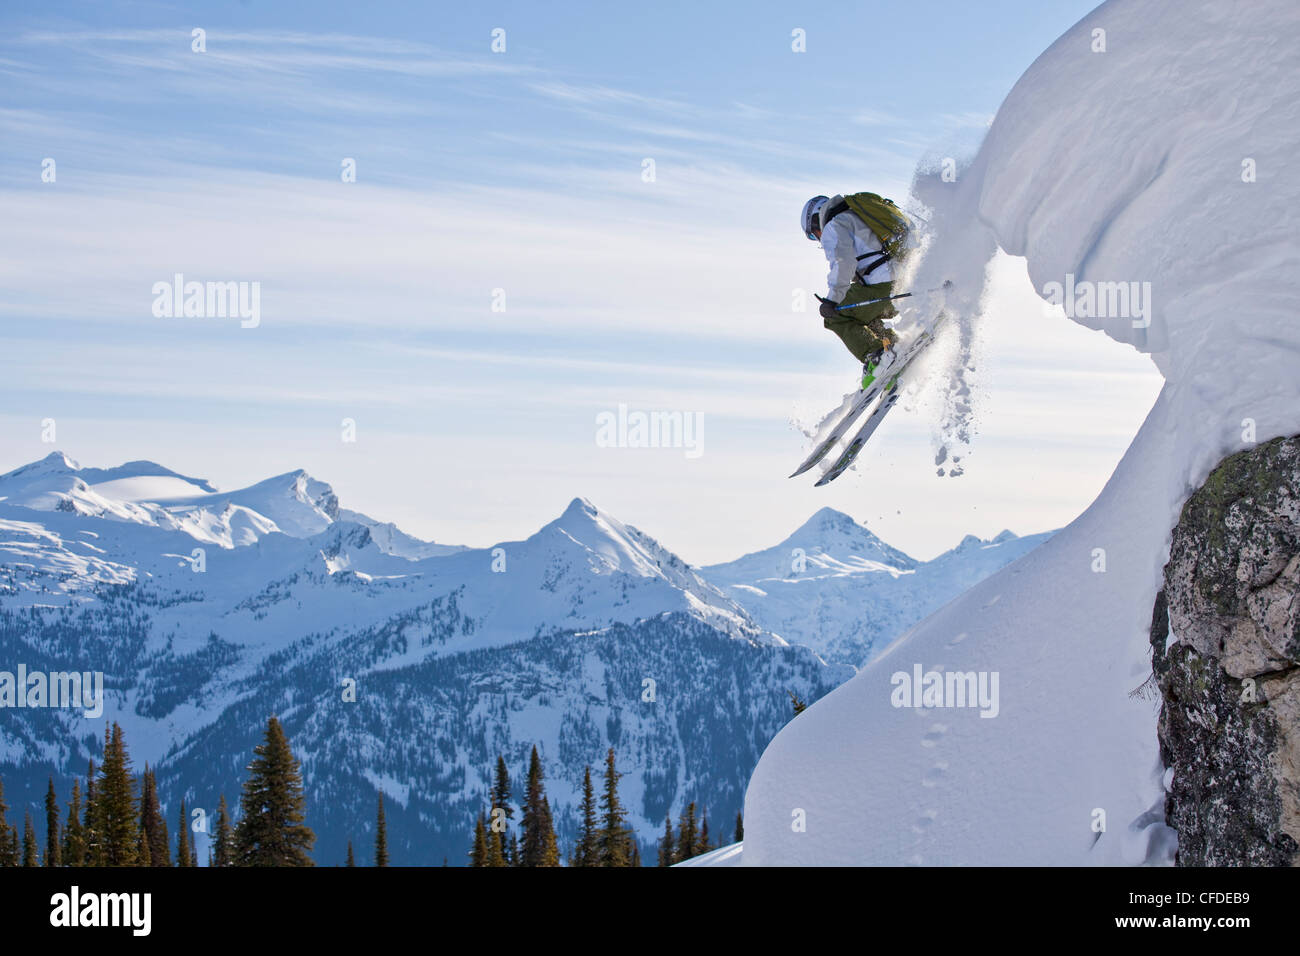 A male skier airs off a snow pillow while on a cat ski trip. Monashee Mountains, Britsh Columbia, Canada - Stock Image